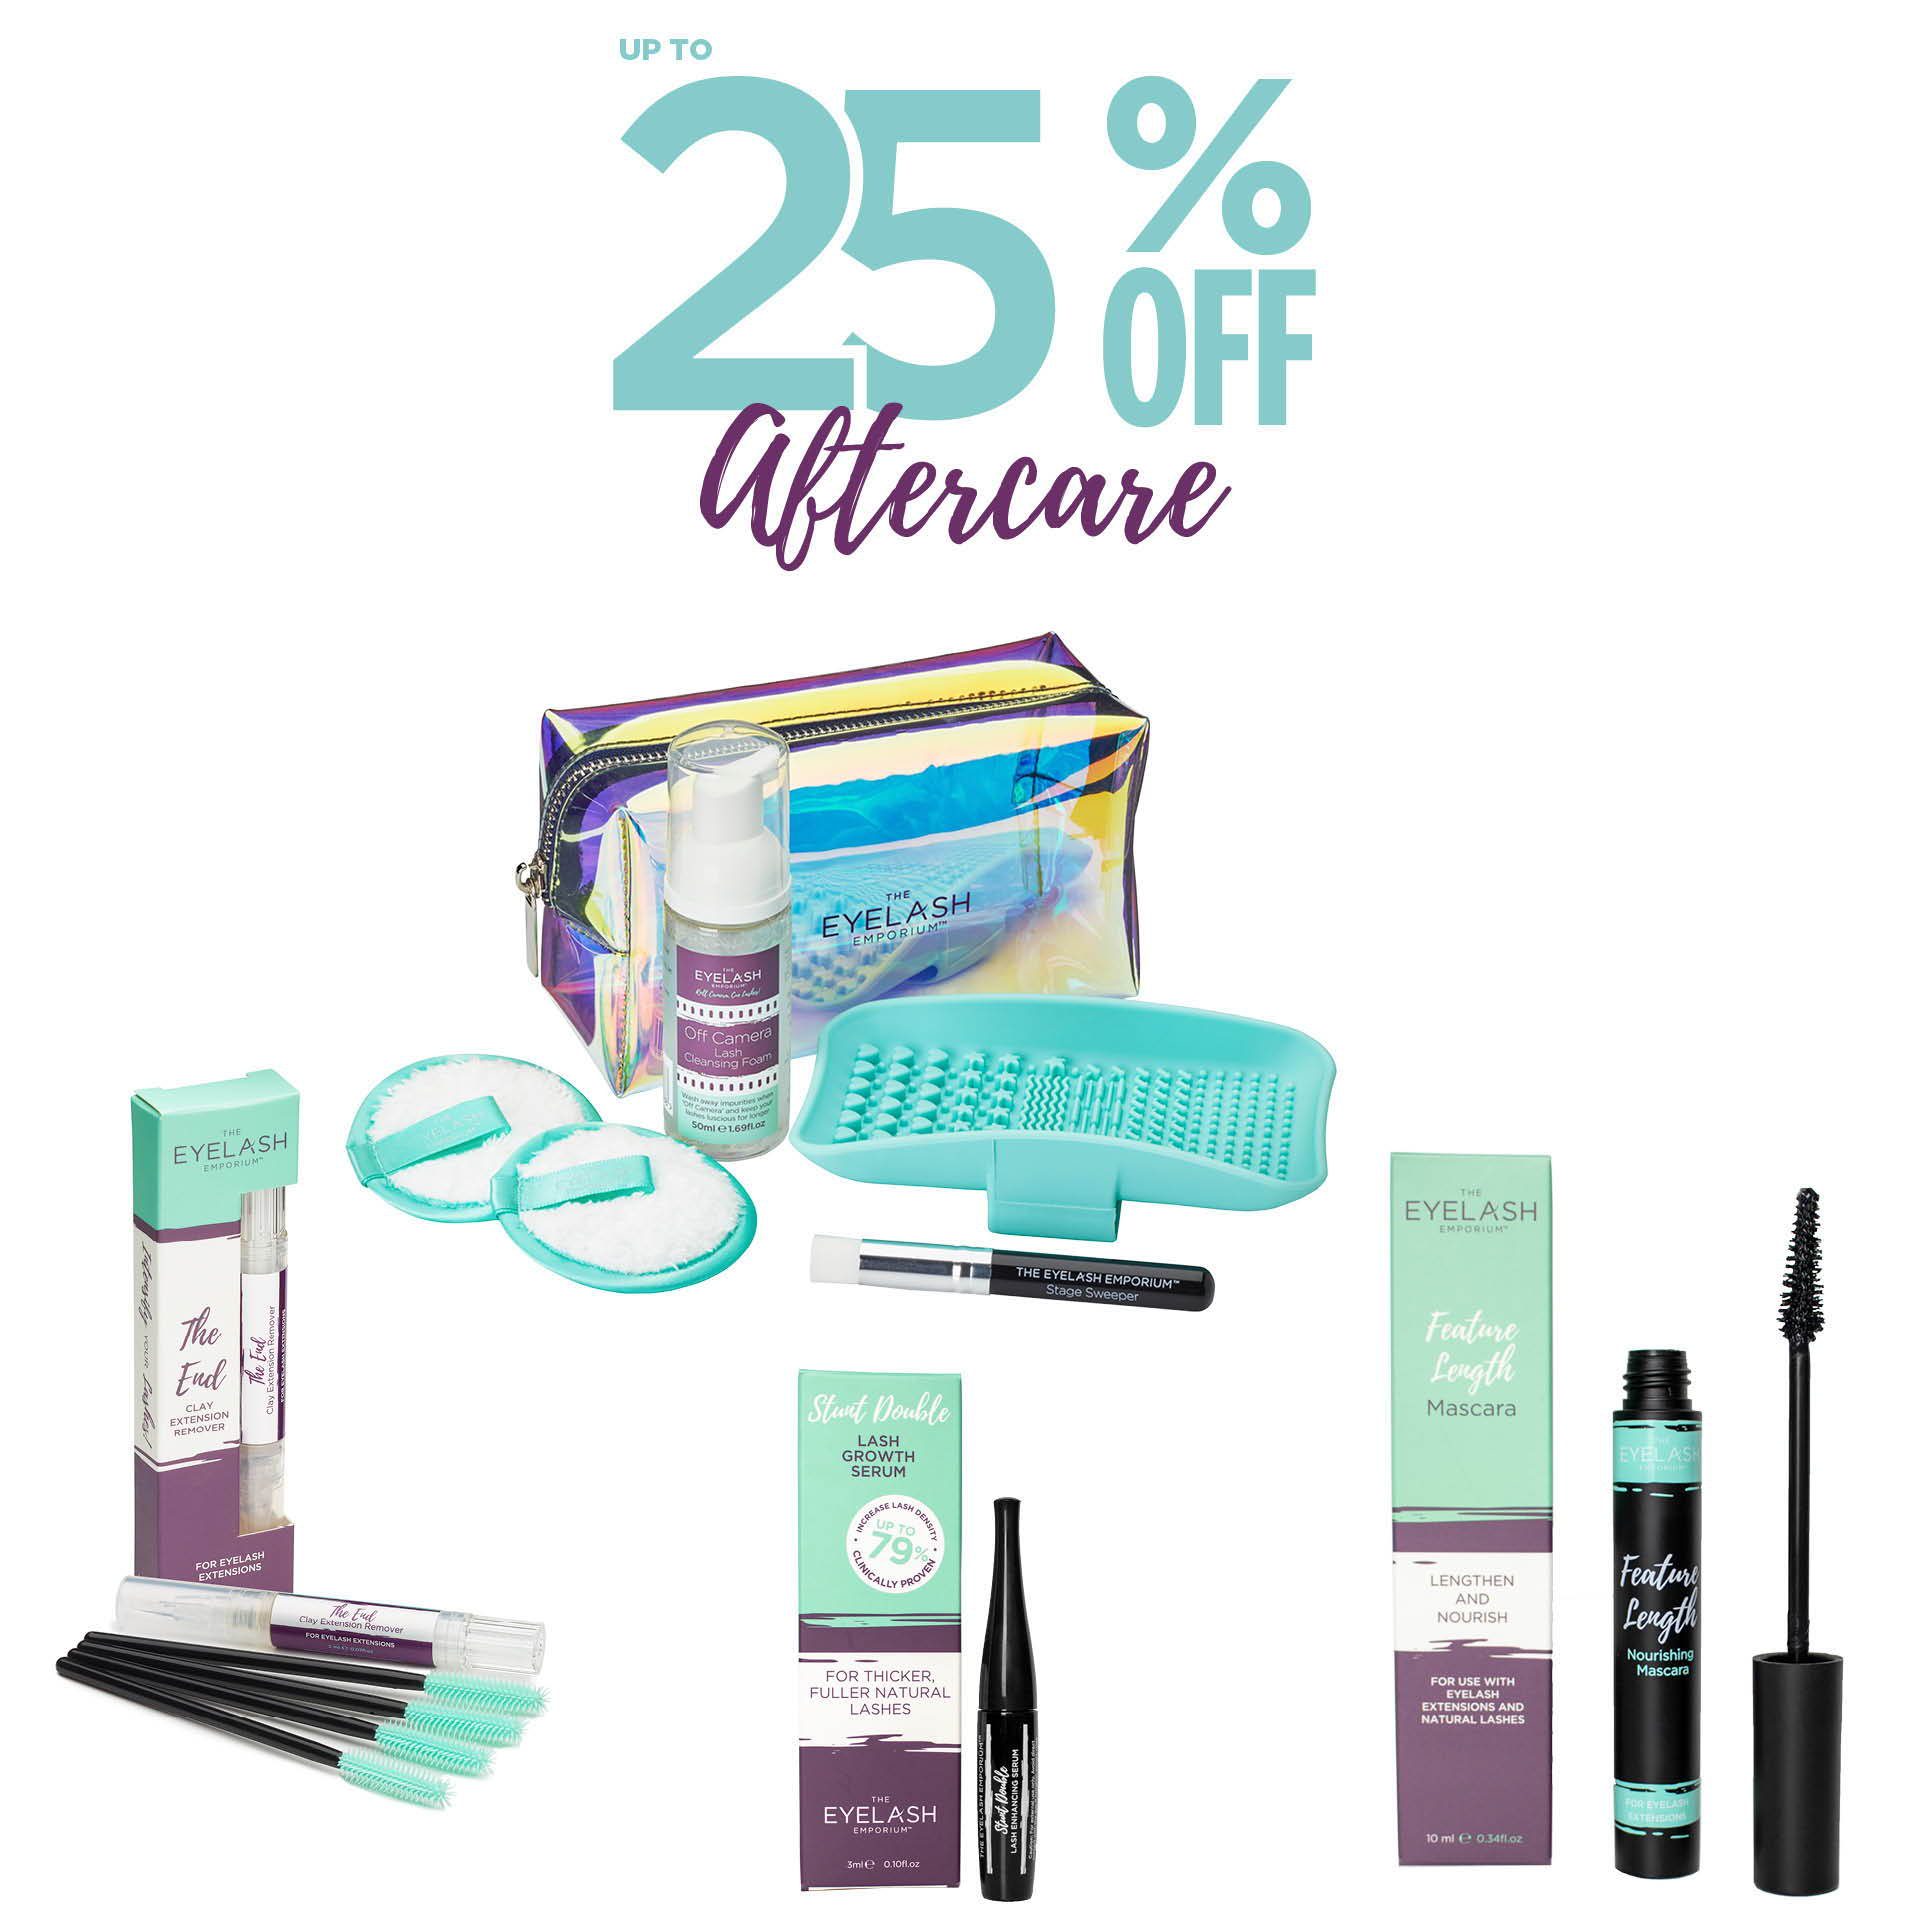 Up to 25% off aftercare